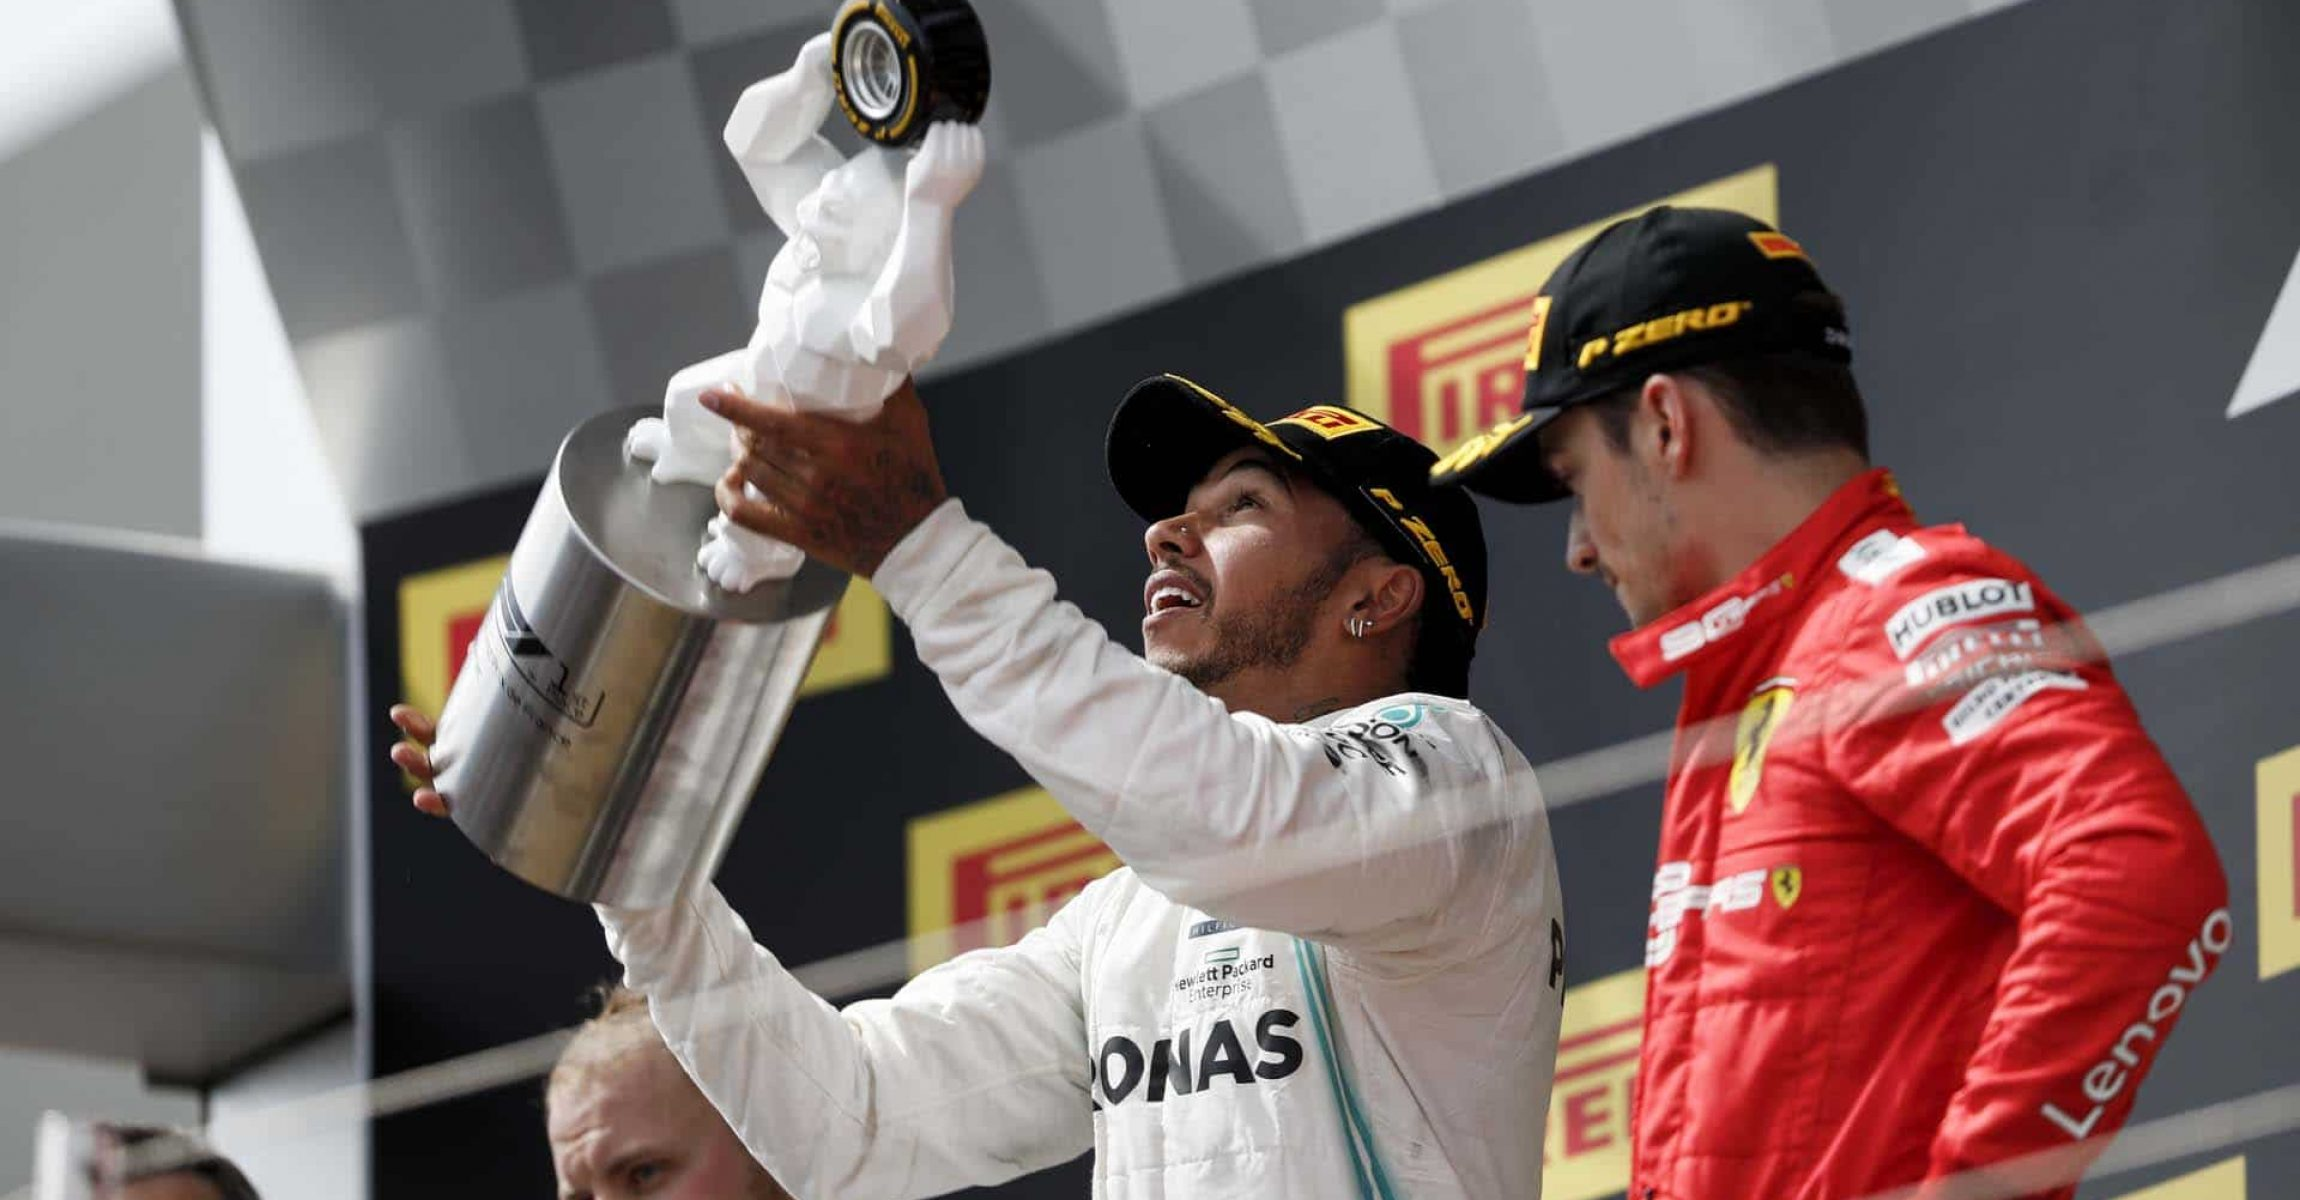 CIRCUIT PAUL RICARD, FRANCE - JUNE 23: Lewis Hamilton, Mercedes AMG F1, 1st position, celebrates with his trophy with Charles Leclerc, Ferrari, 3rd position, alongside during the French GP at Circuit Paul Ricard on June 23, 2019 in Circuit Paul Ricard, France. (Photo by Zak Mauger / LAT Images)